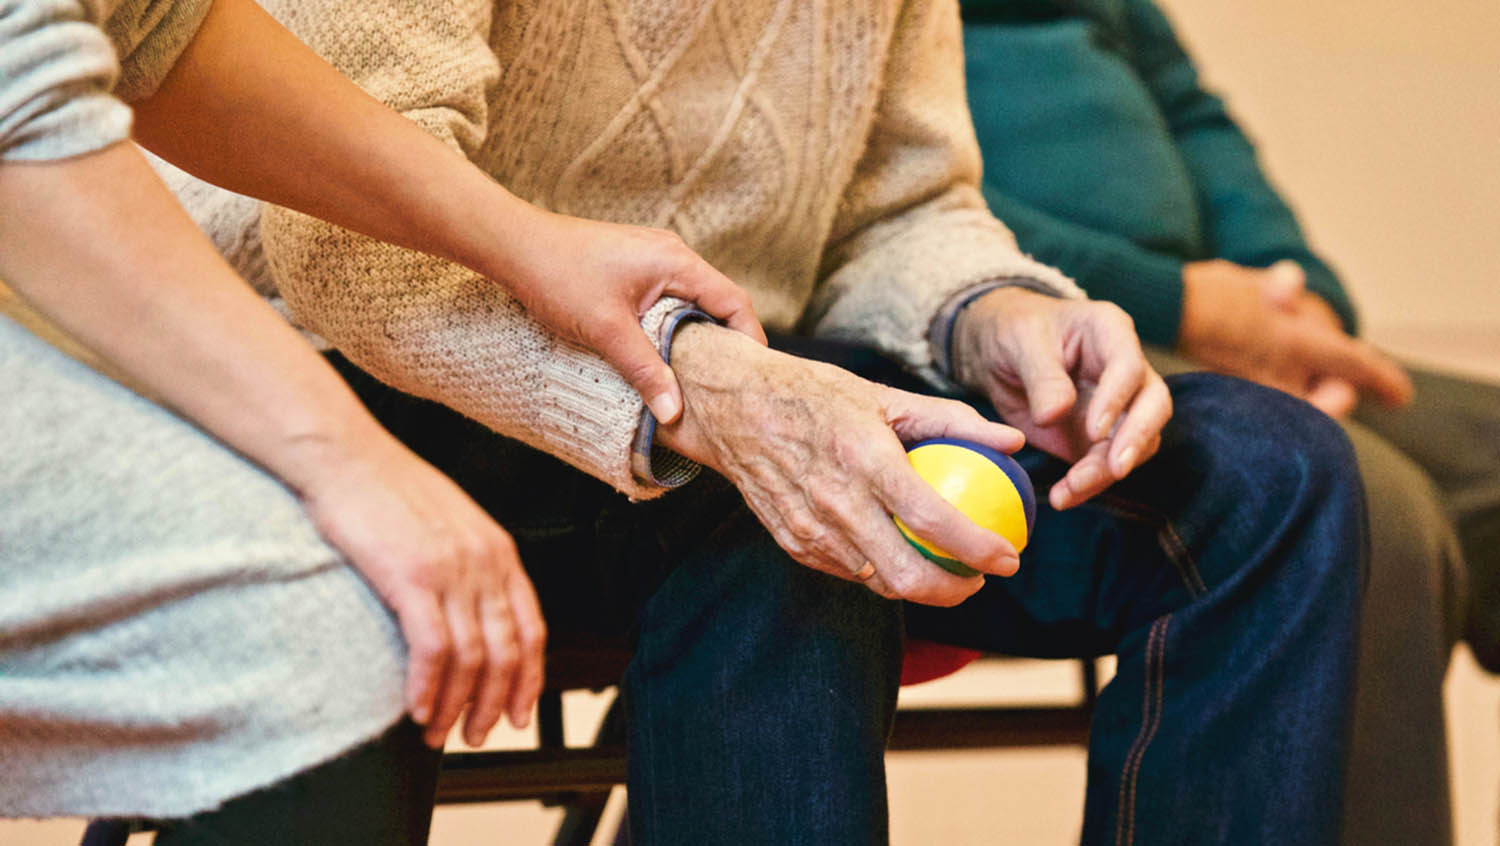 Social Security Disability Benefits for Arthritis